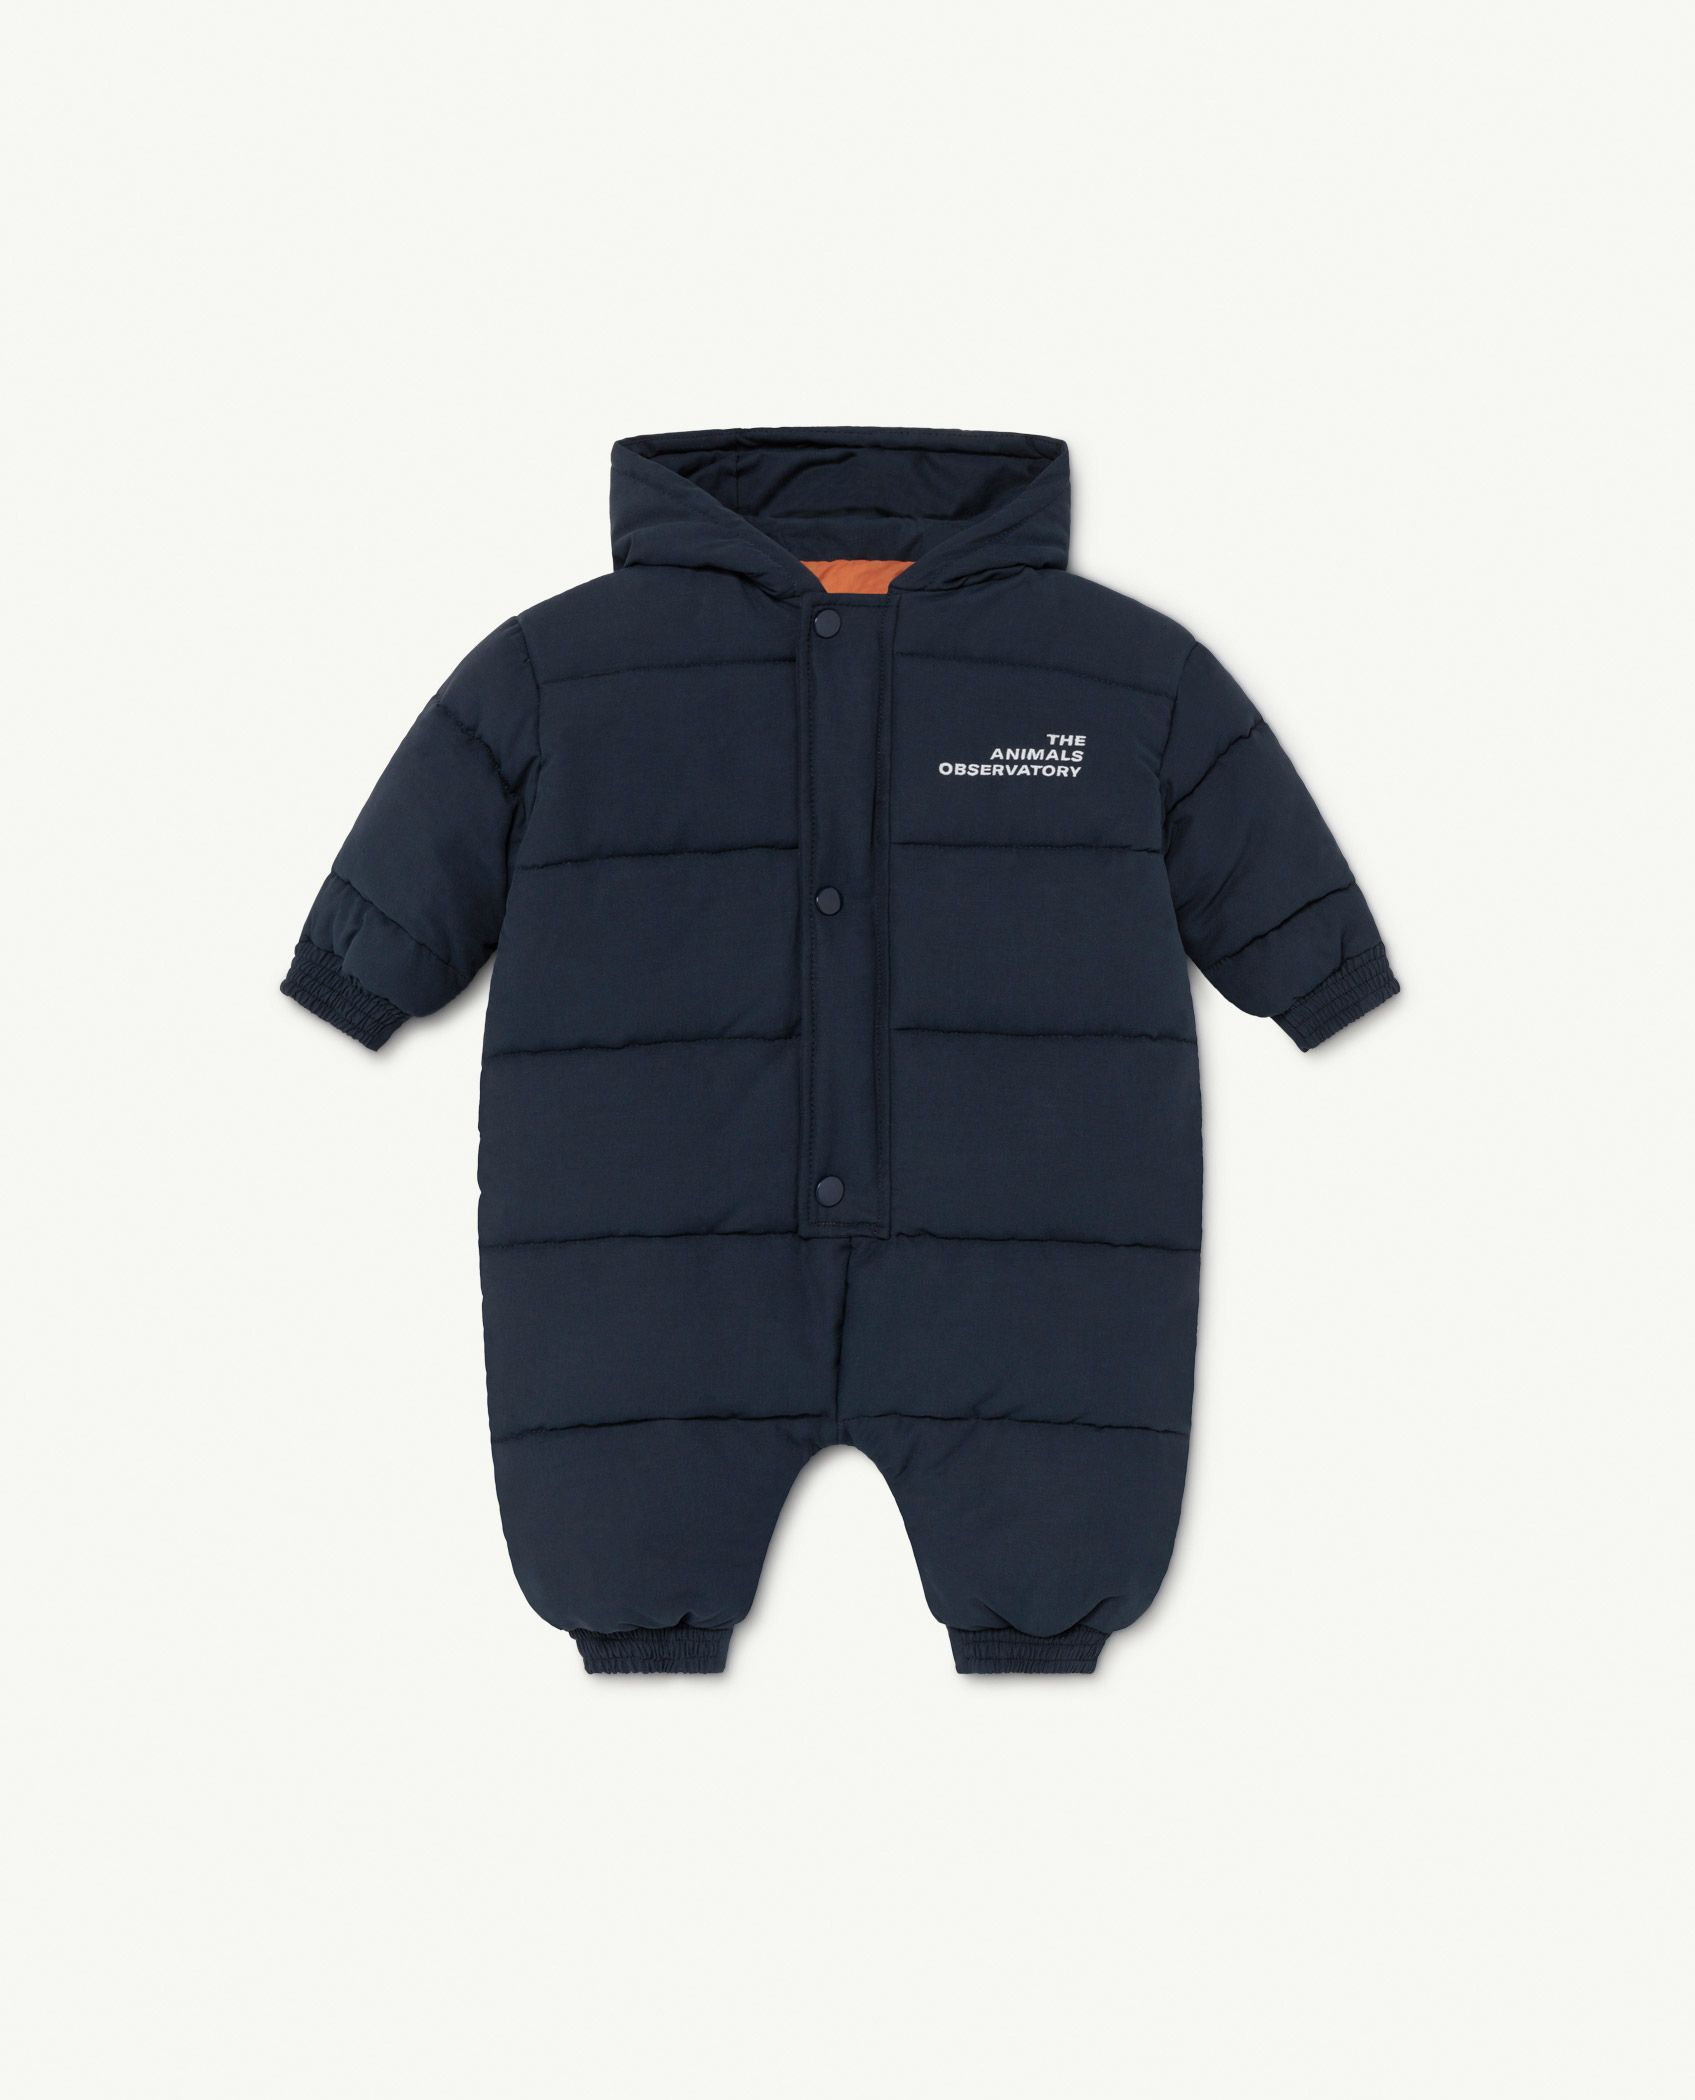 Navy The Animals Bumblebee Baby Jumpsuit img-1